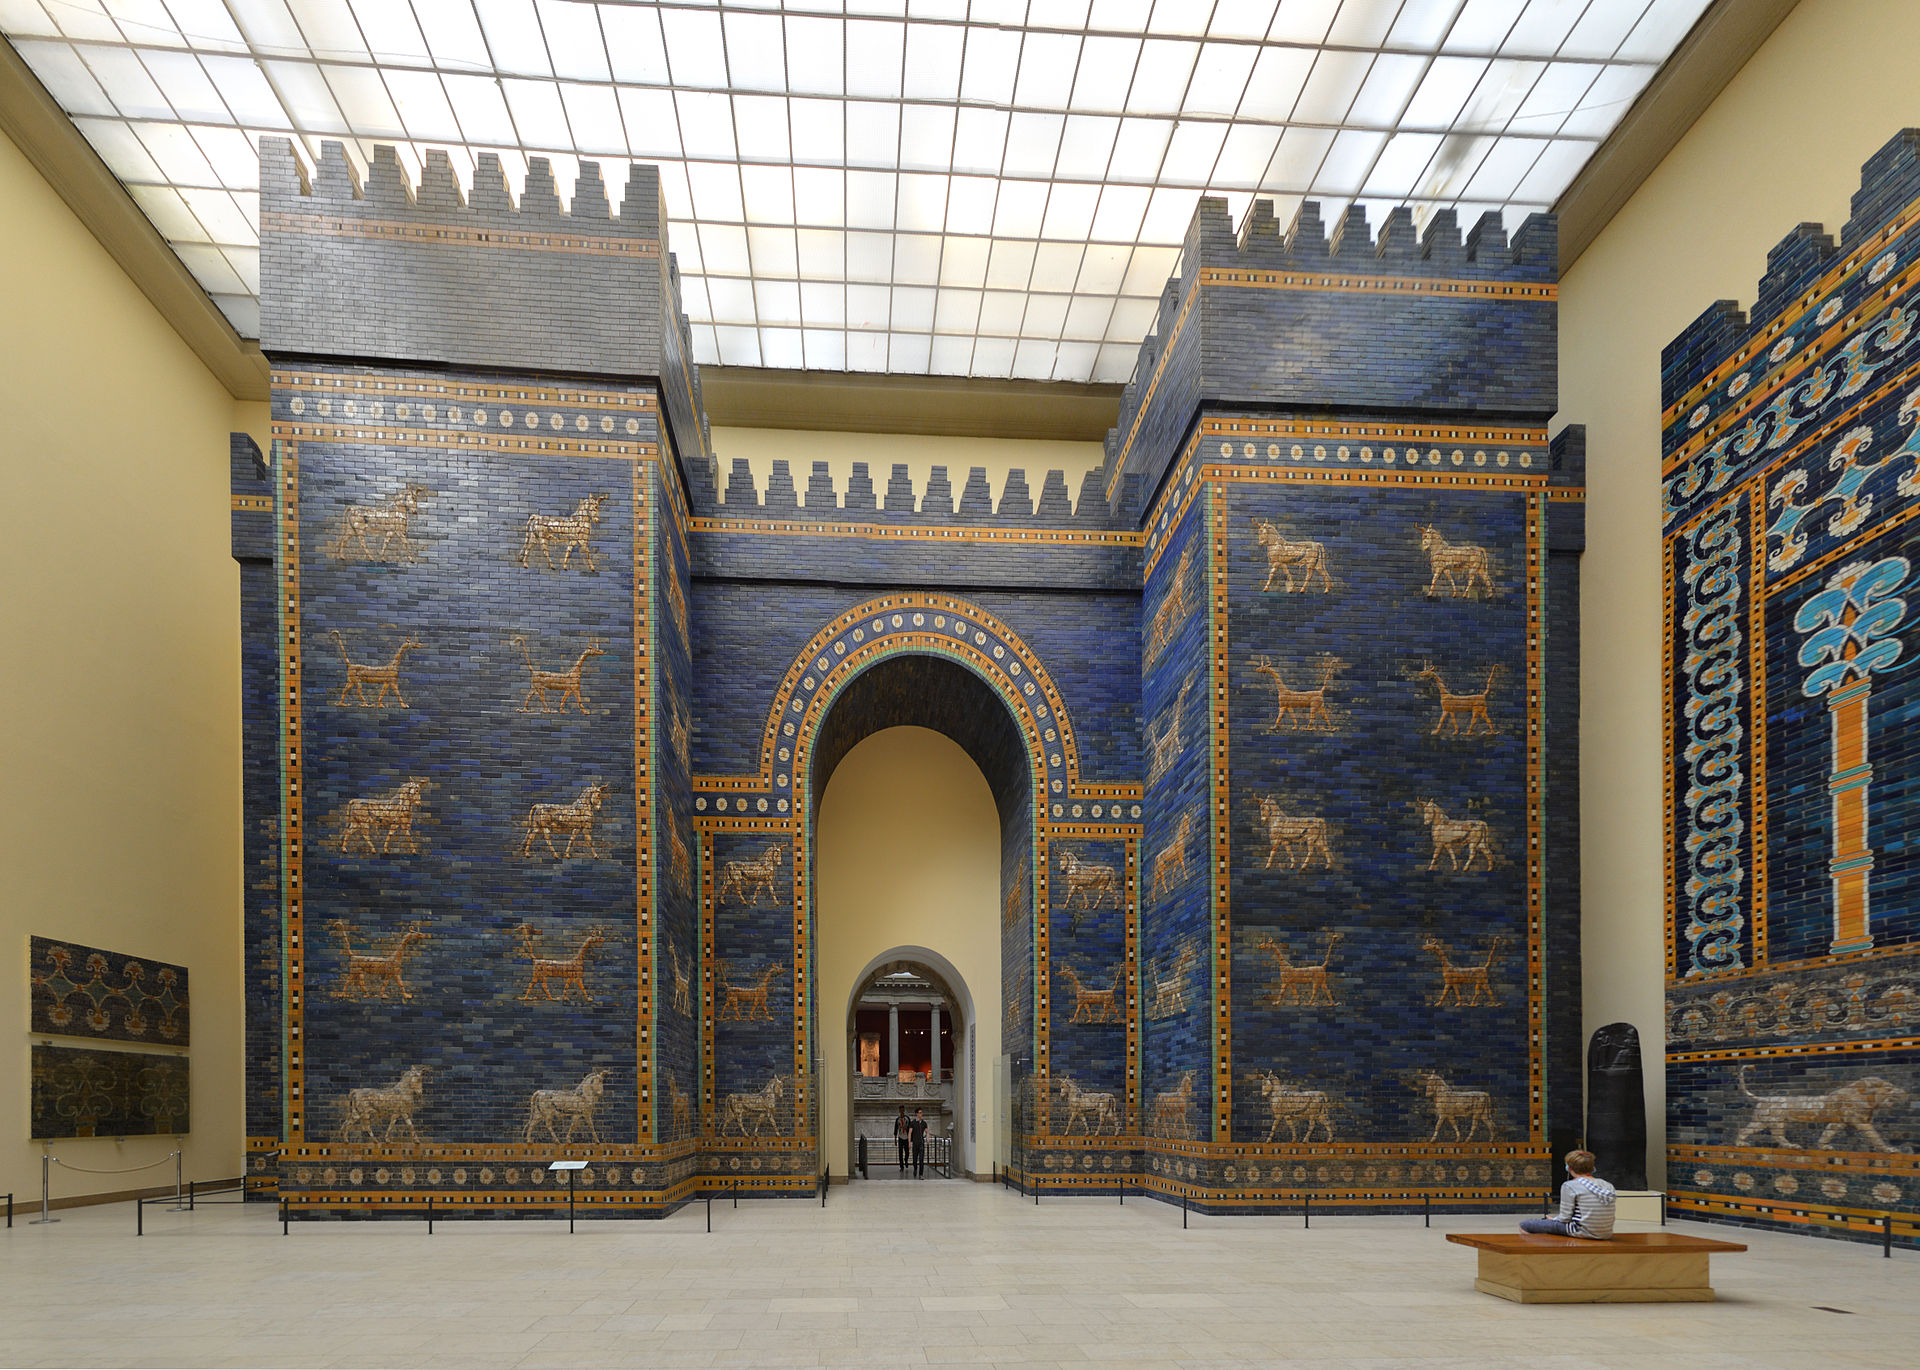 Ishtar Gate And Throne Room Wall From Babylon